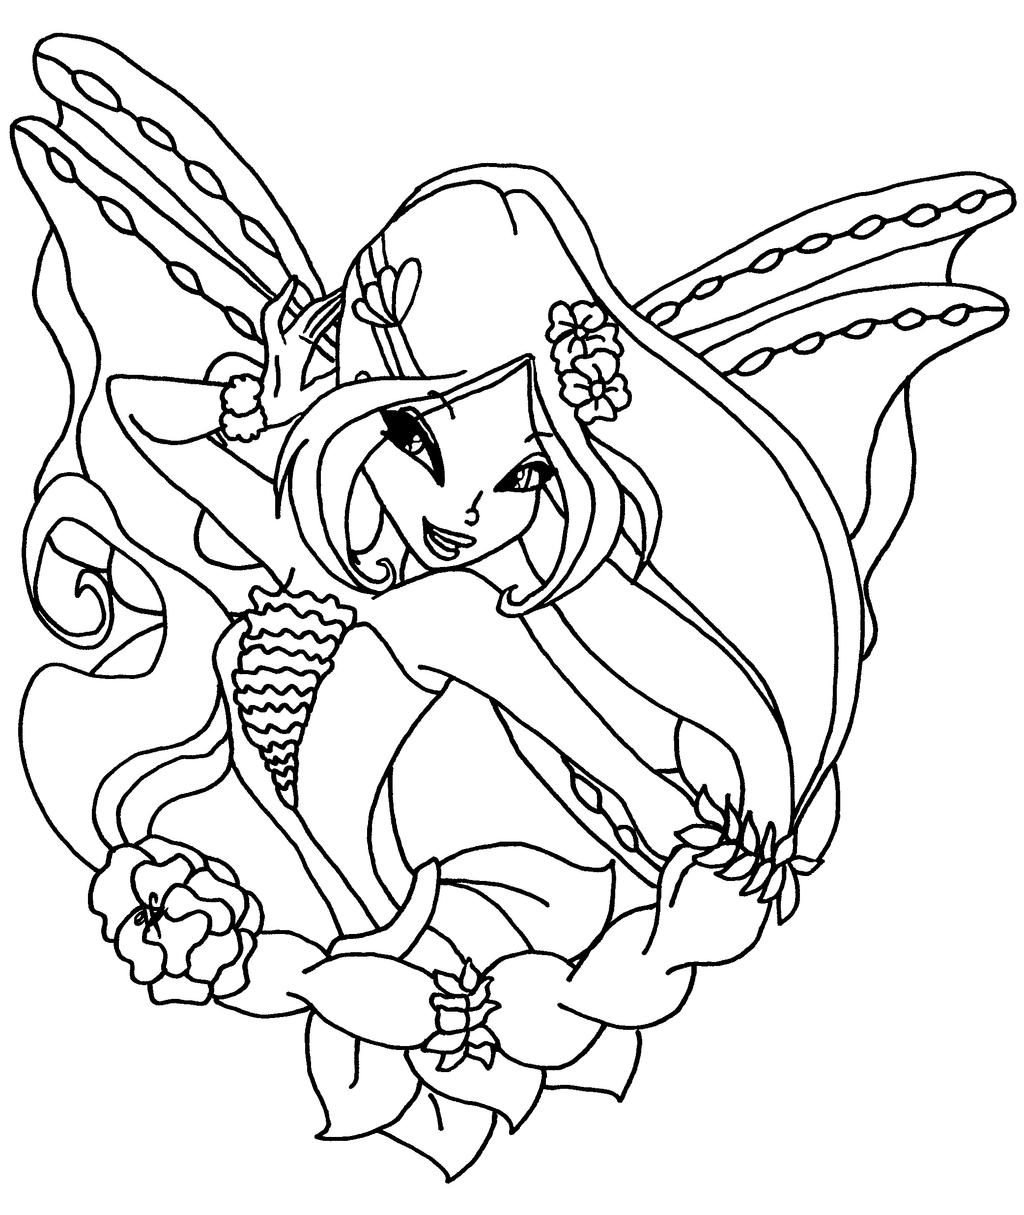 winx club coloring pages flora flora school by elfkena on deviantart pages coloring flora club winx